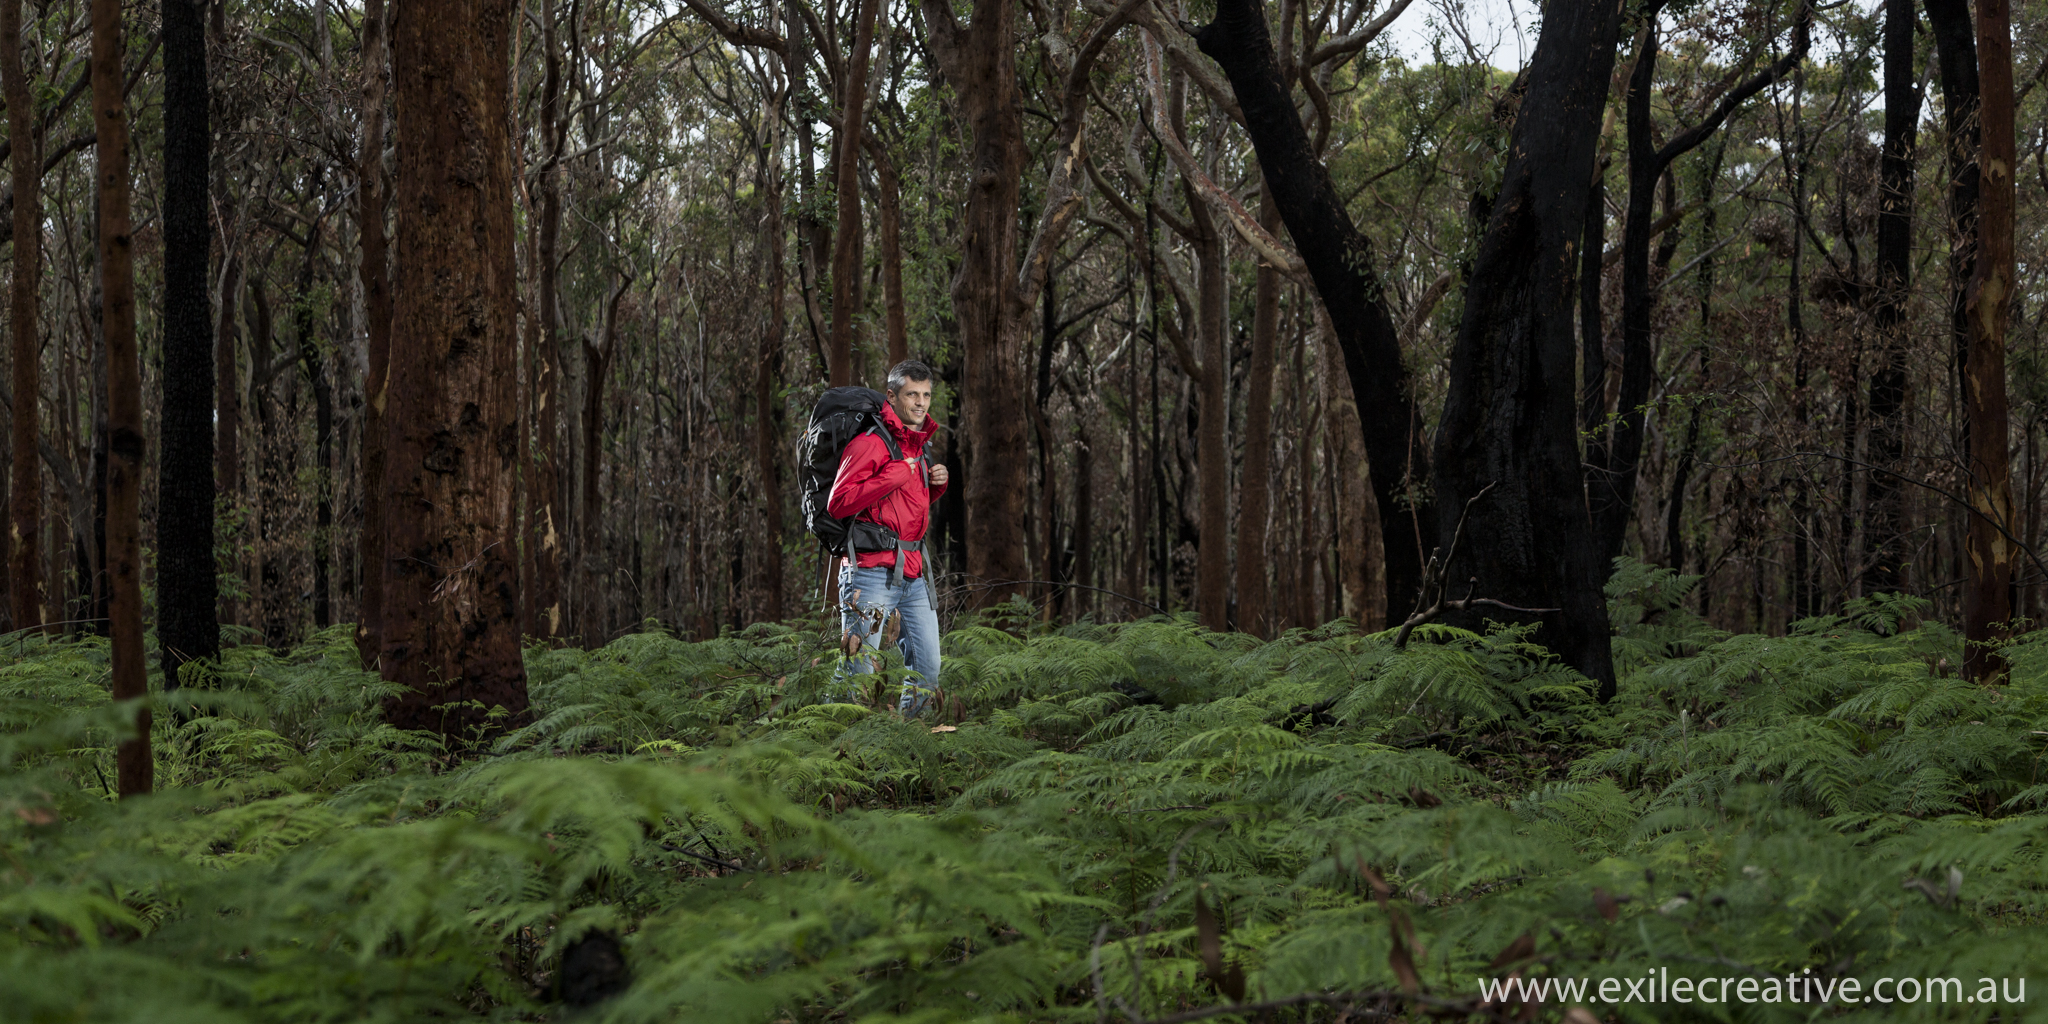 Hiking through Glenrock Reserve